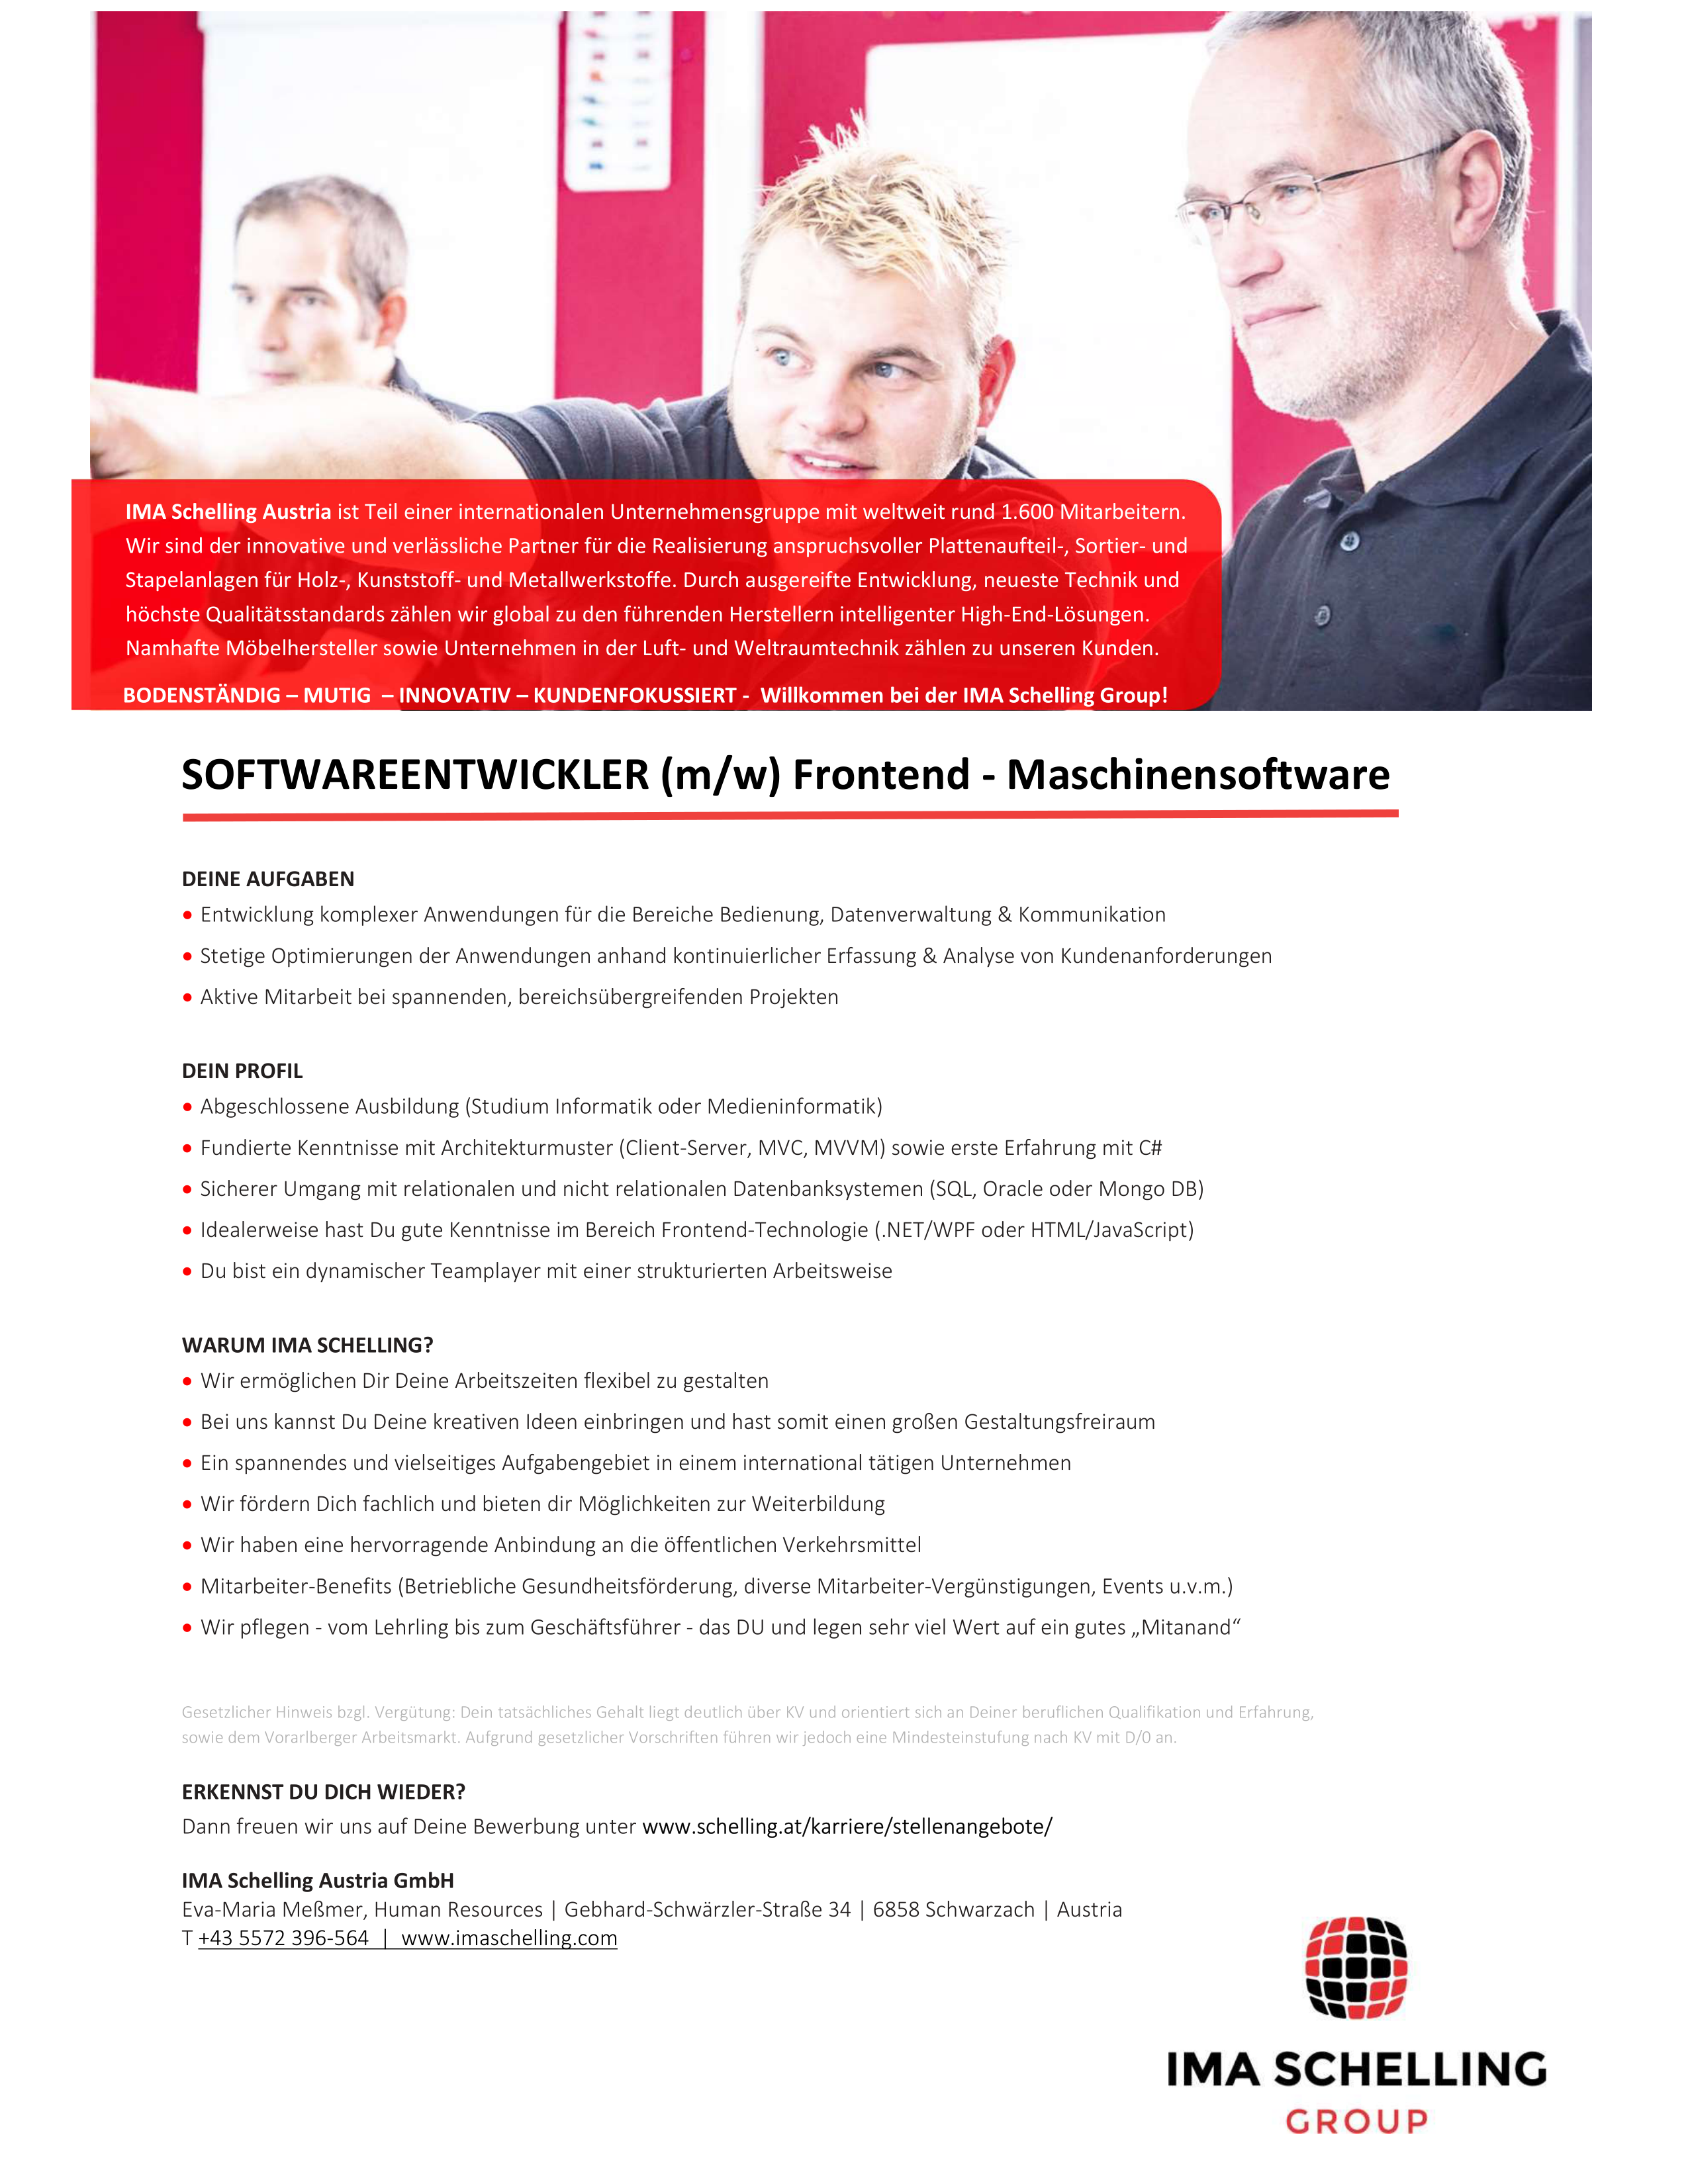 Softwareentwickler (m/w) Frontend - Maschinensoftware